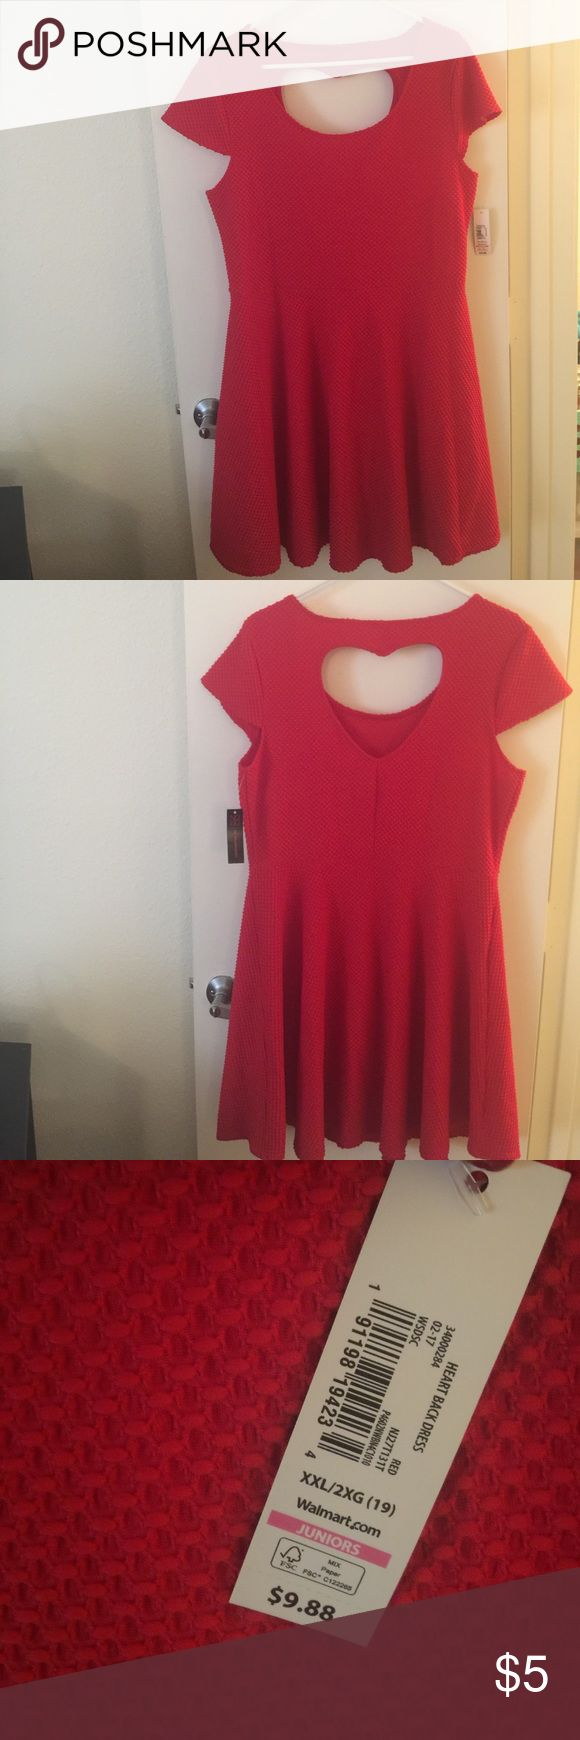 No Boundaries Heart Back Dress Cute red flowy dress for the summer, or pair with leggings for the fall and winter. Heart back cut out for an extra peek of skin. No Boundaries Dresses Mini